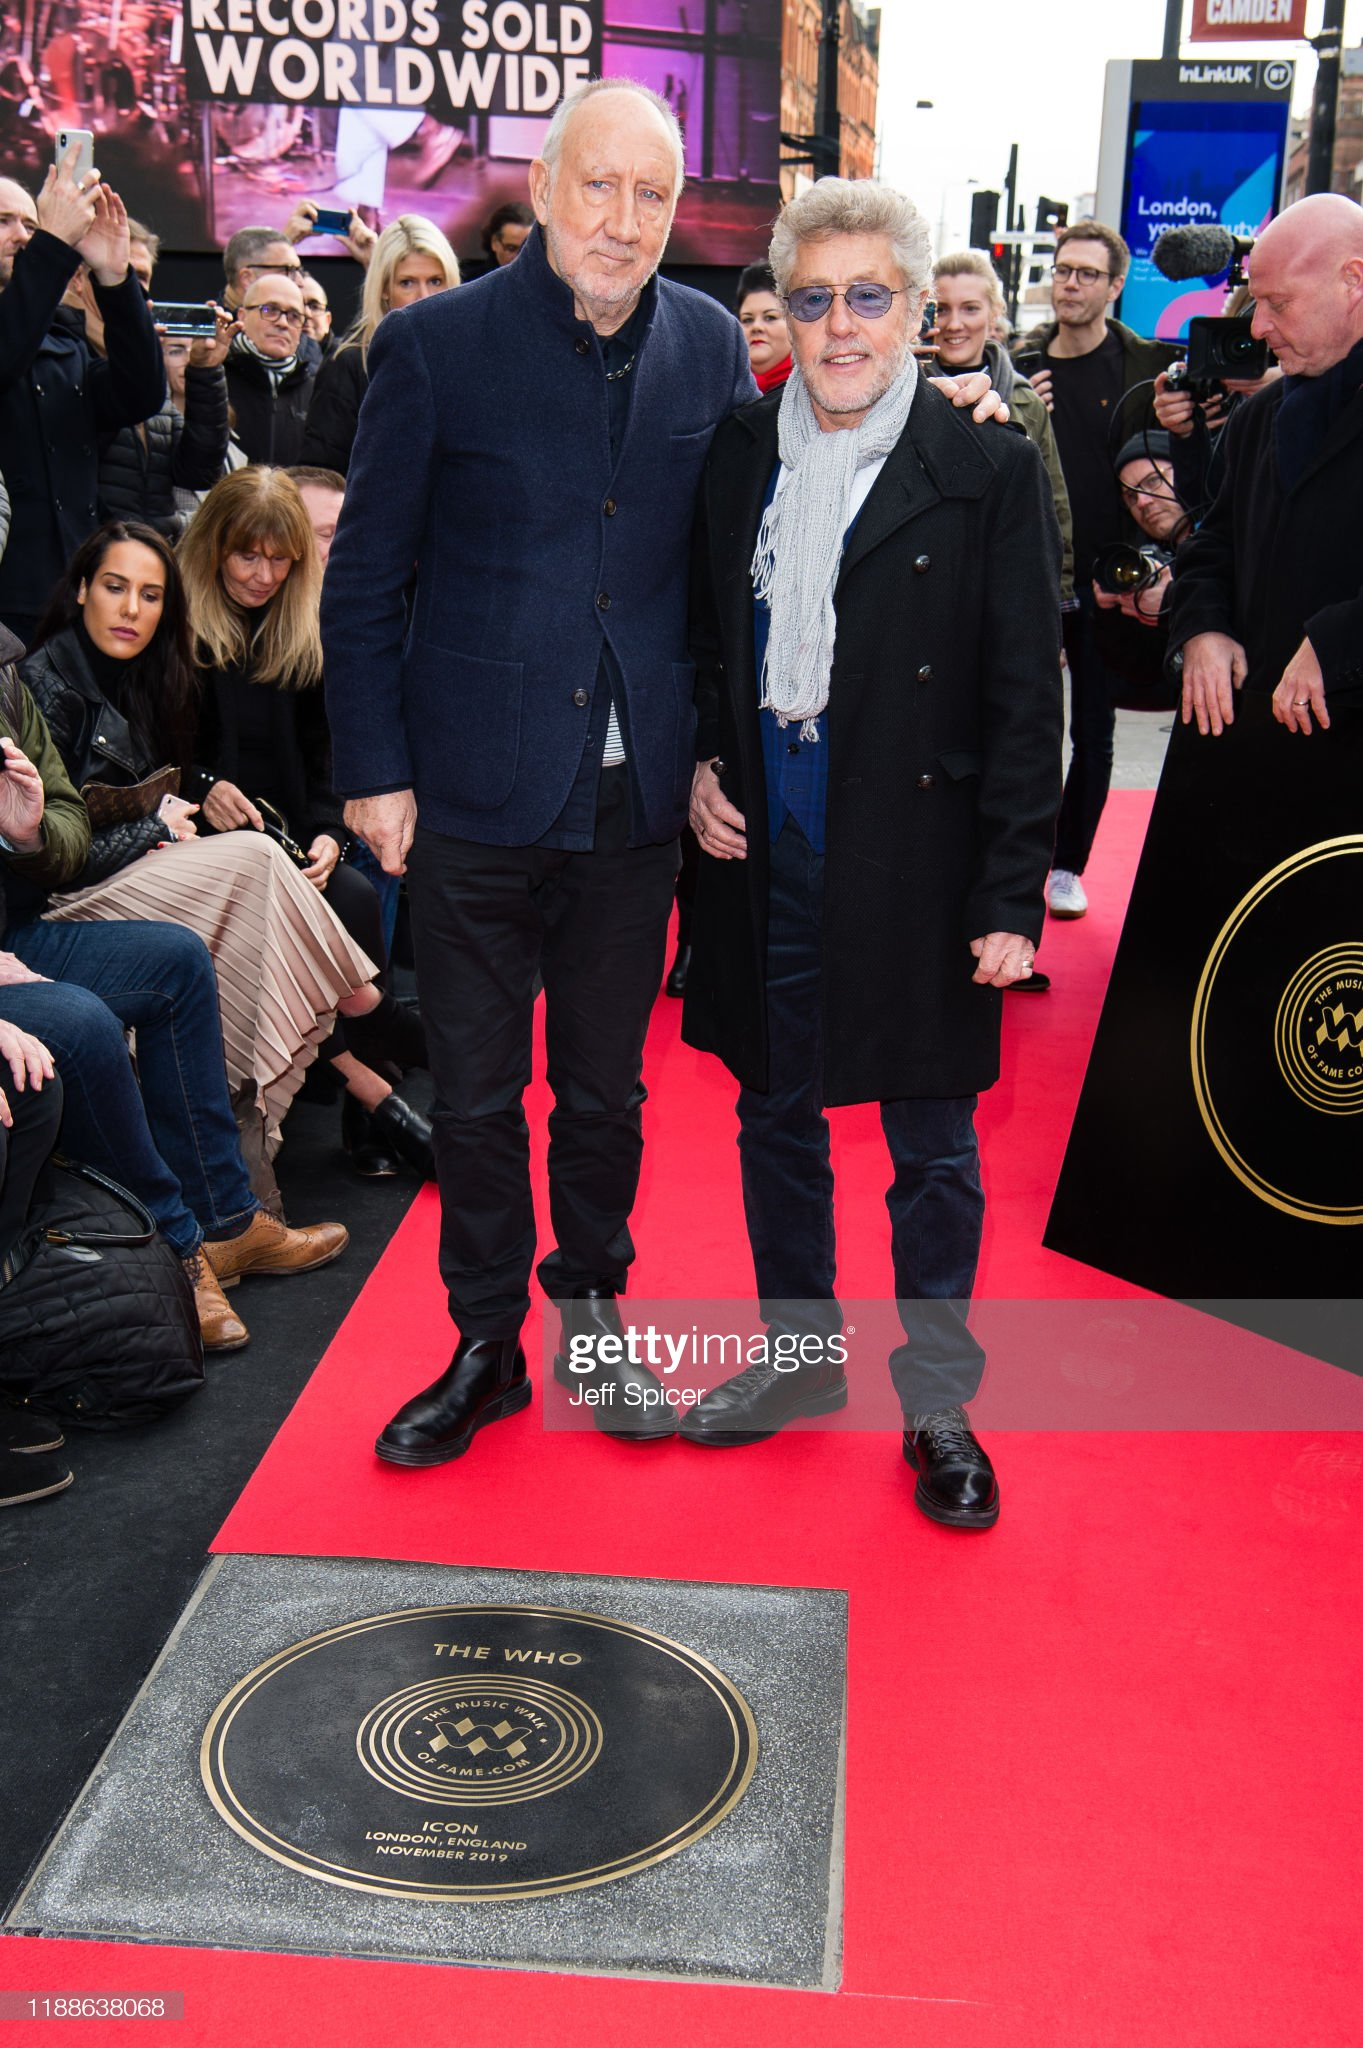 ¿Cuánto mide Roger Daltrey? - Altura - Real height Pete-townshend-and-roger-daltrey-from-the-who-attend-the-music-walk-picture-id1188638068?s=2048x2048